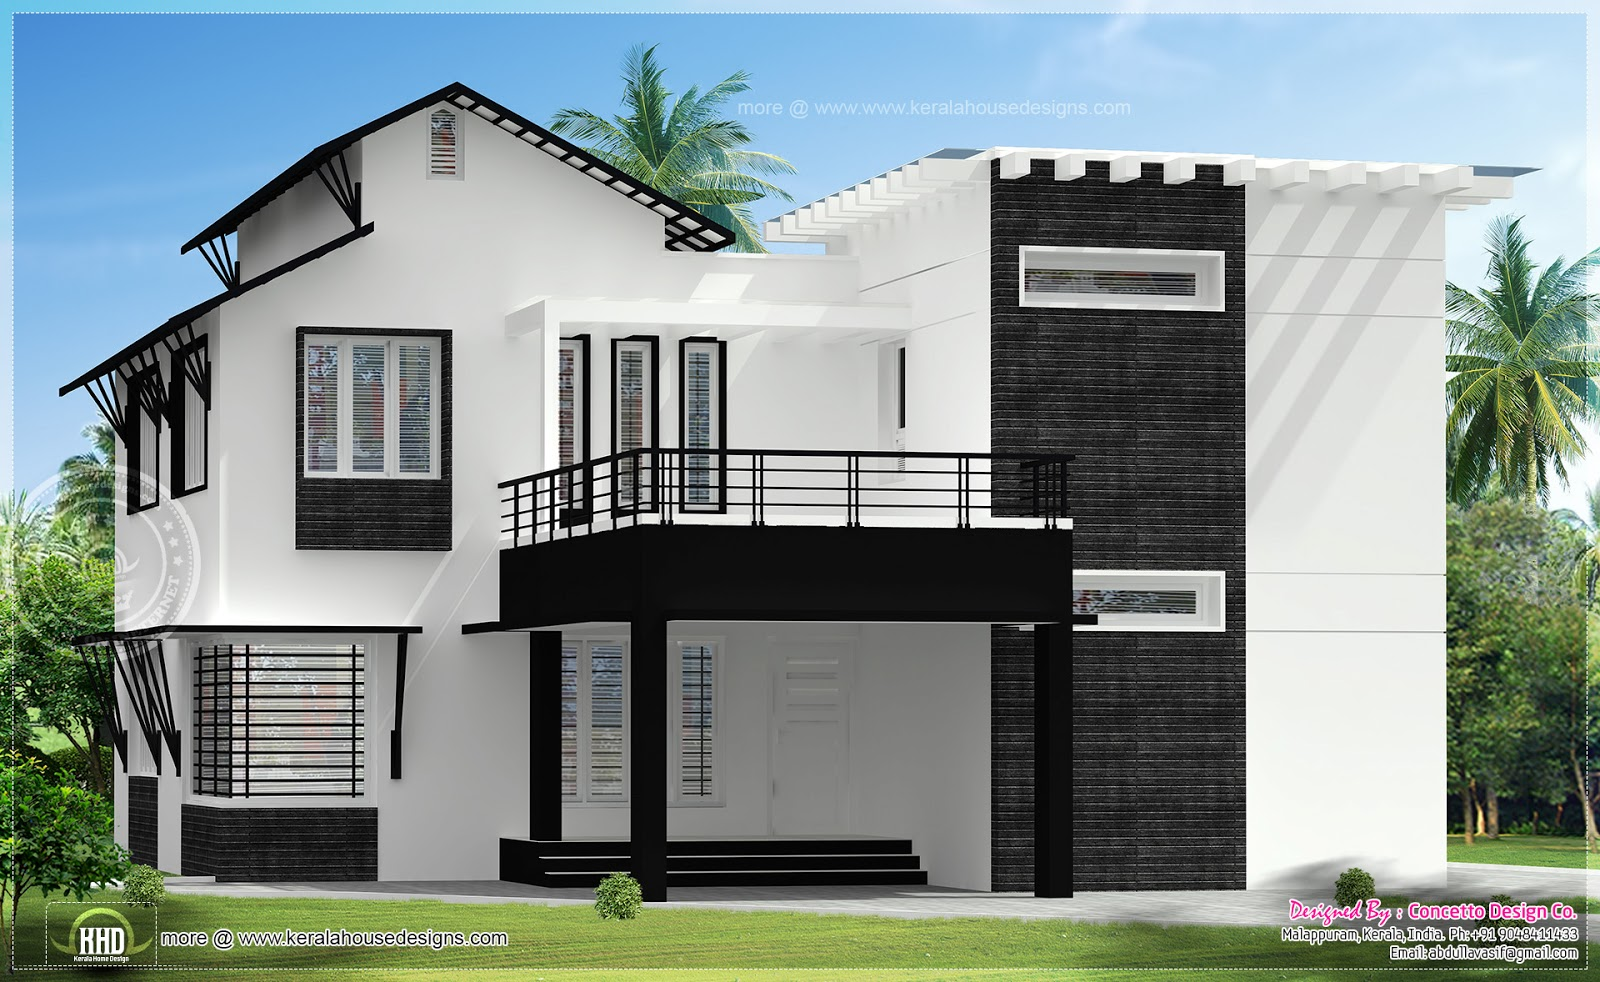 Front Elevation Of Different Houses : Different house exteriors by concetto design home